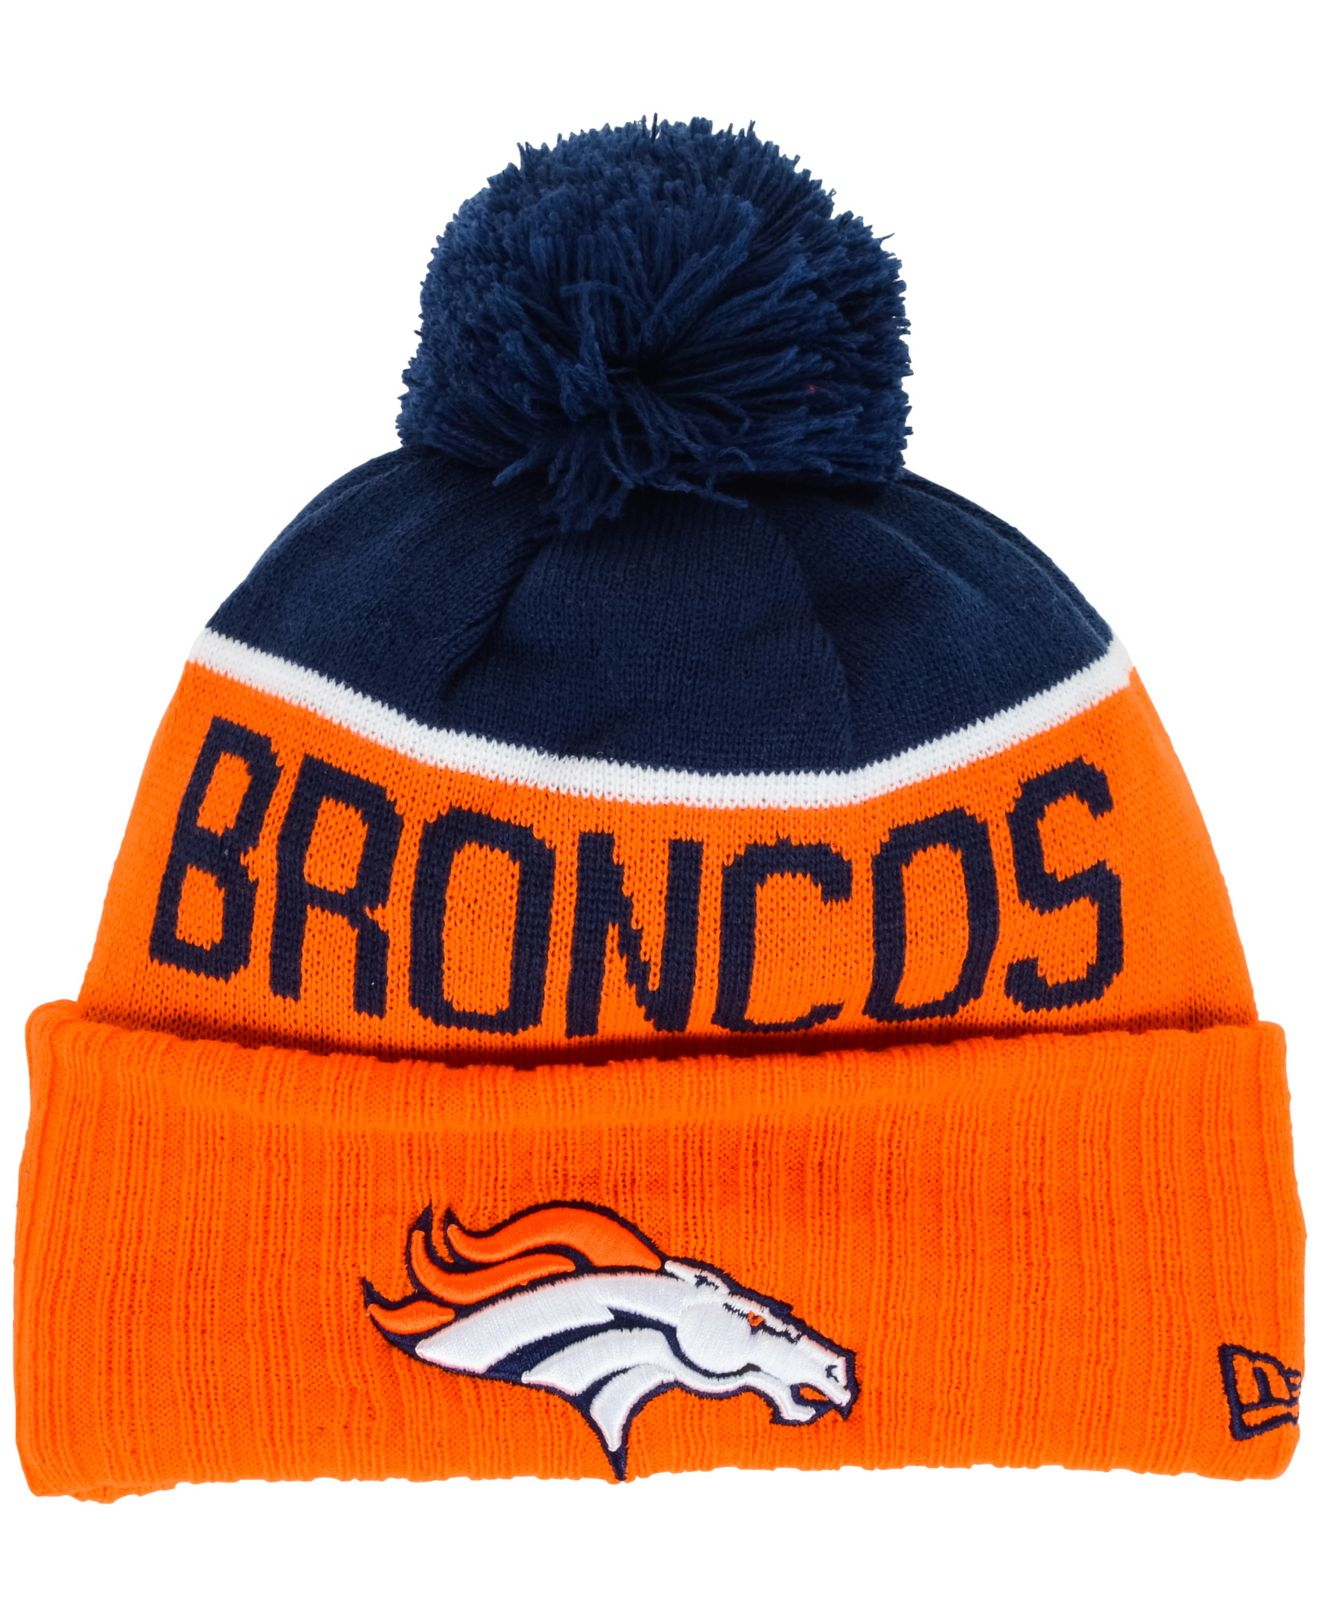 detailing fed28 790b3 ... new era 9539f ae6d7  greece denver broncos knit hat beanies broncos  knitted hat . 7821e 59262